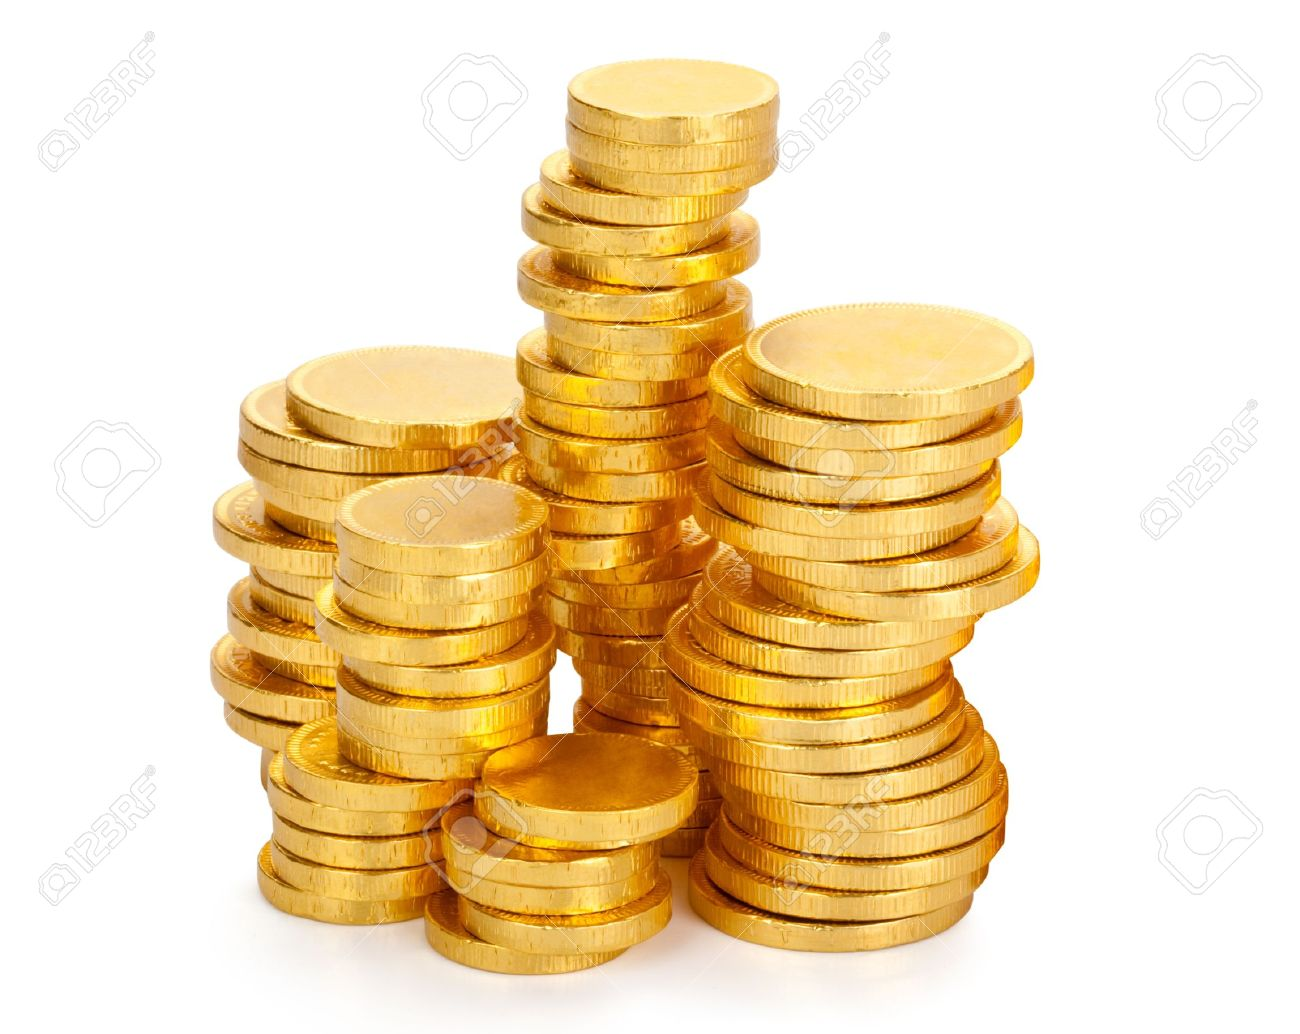 Lots Of Chocolate Money In A Gold Wrapper Stock Photo, Picture And ...